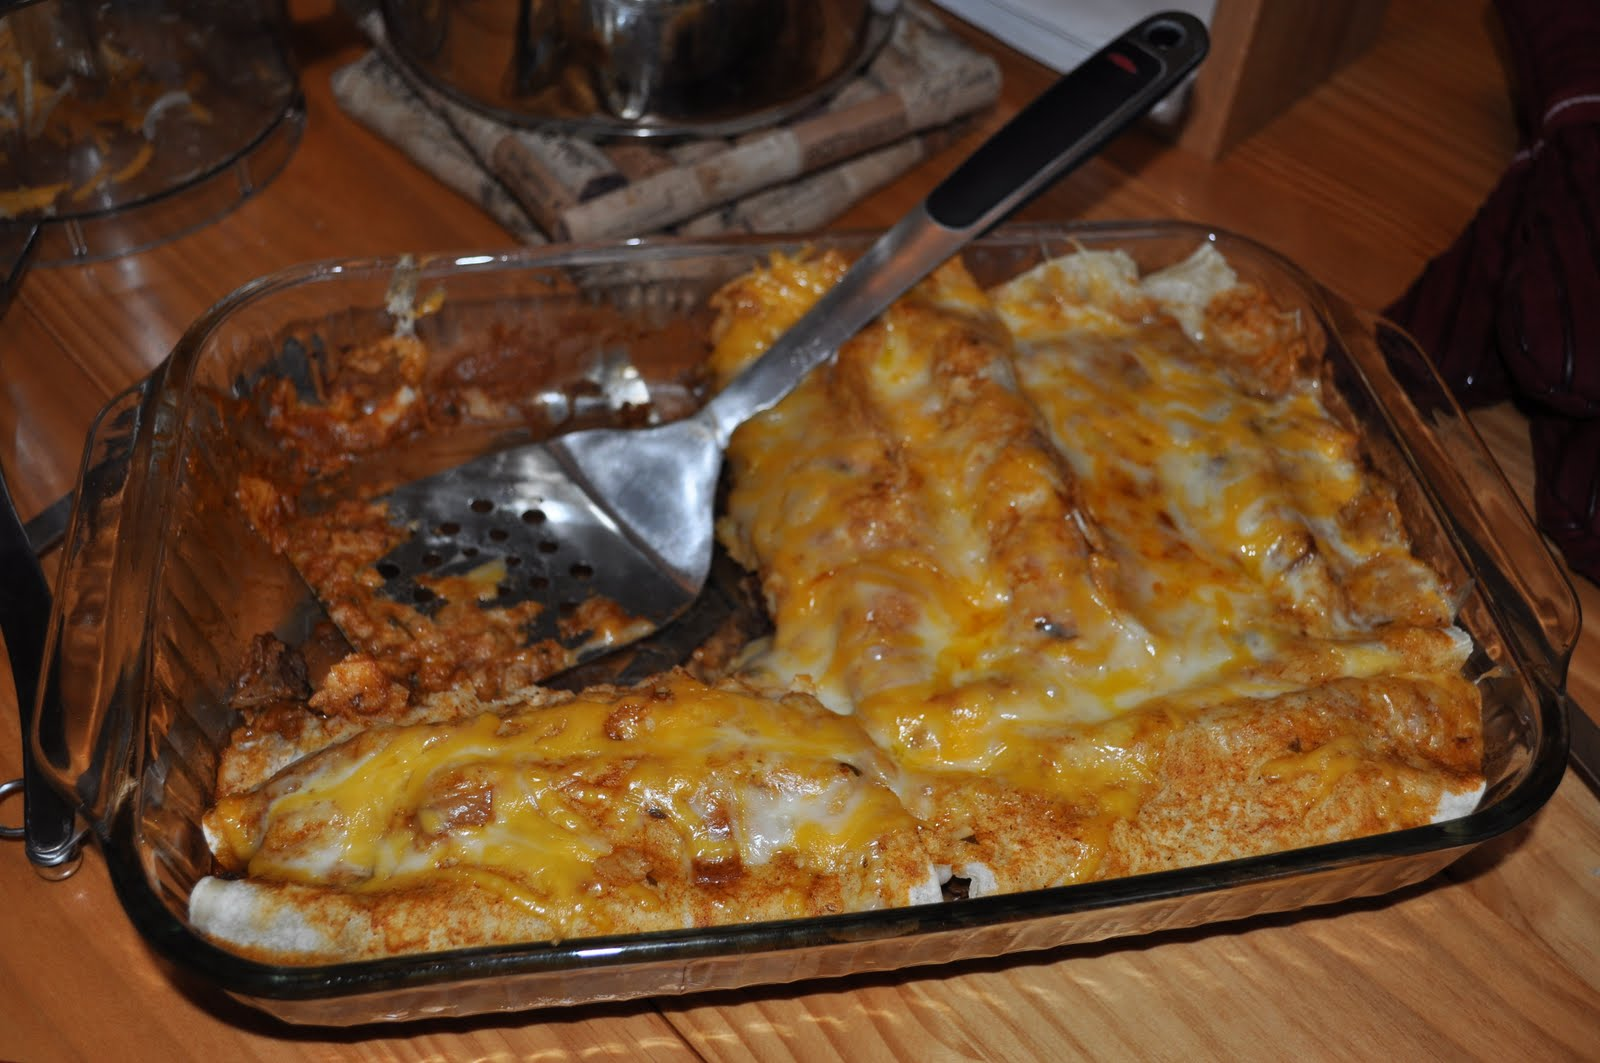 Recipe: Shredded Beef Enchiladas (Homemade, from scratch)